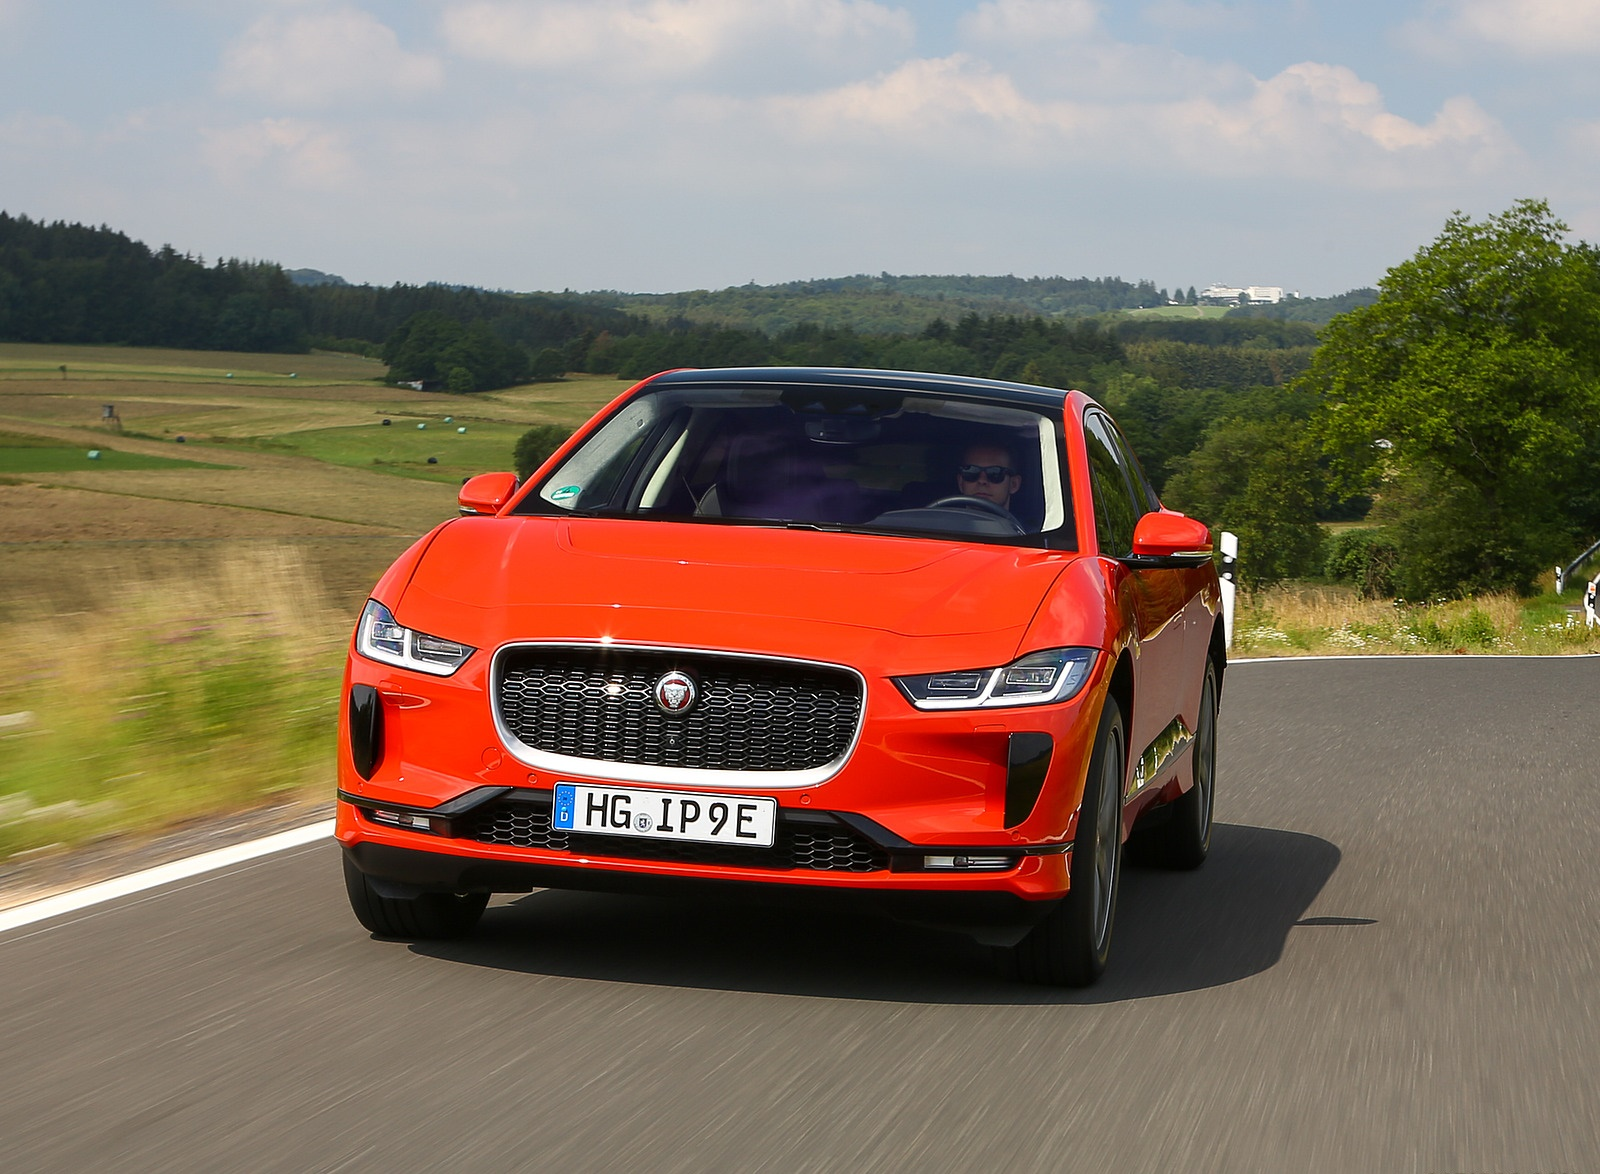 2019 Jaguar I-PACE EV400 AWD HSE First Edition (Color: Photon Red) Front Wallpapers (6)